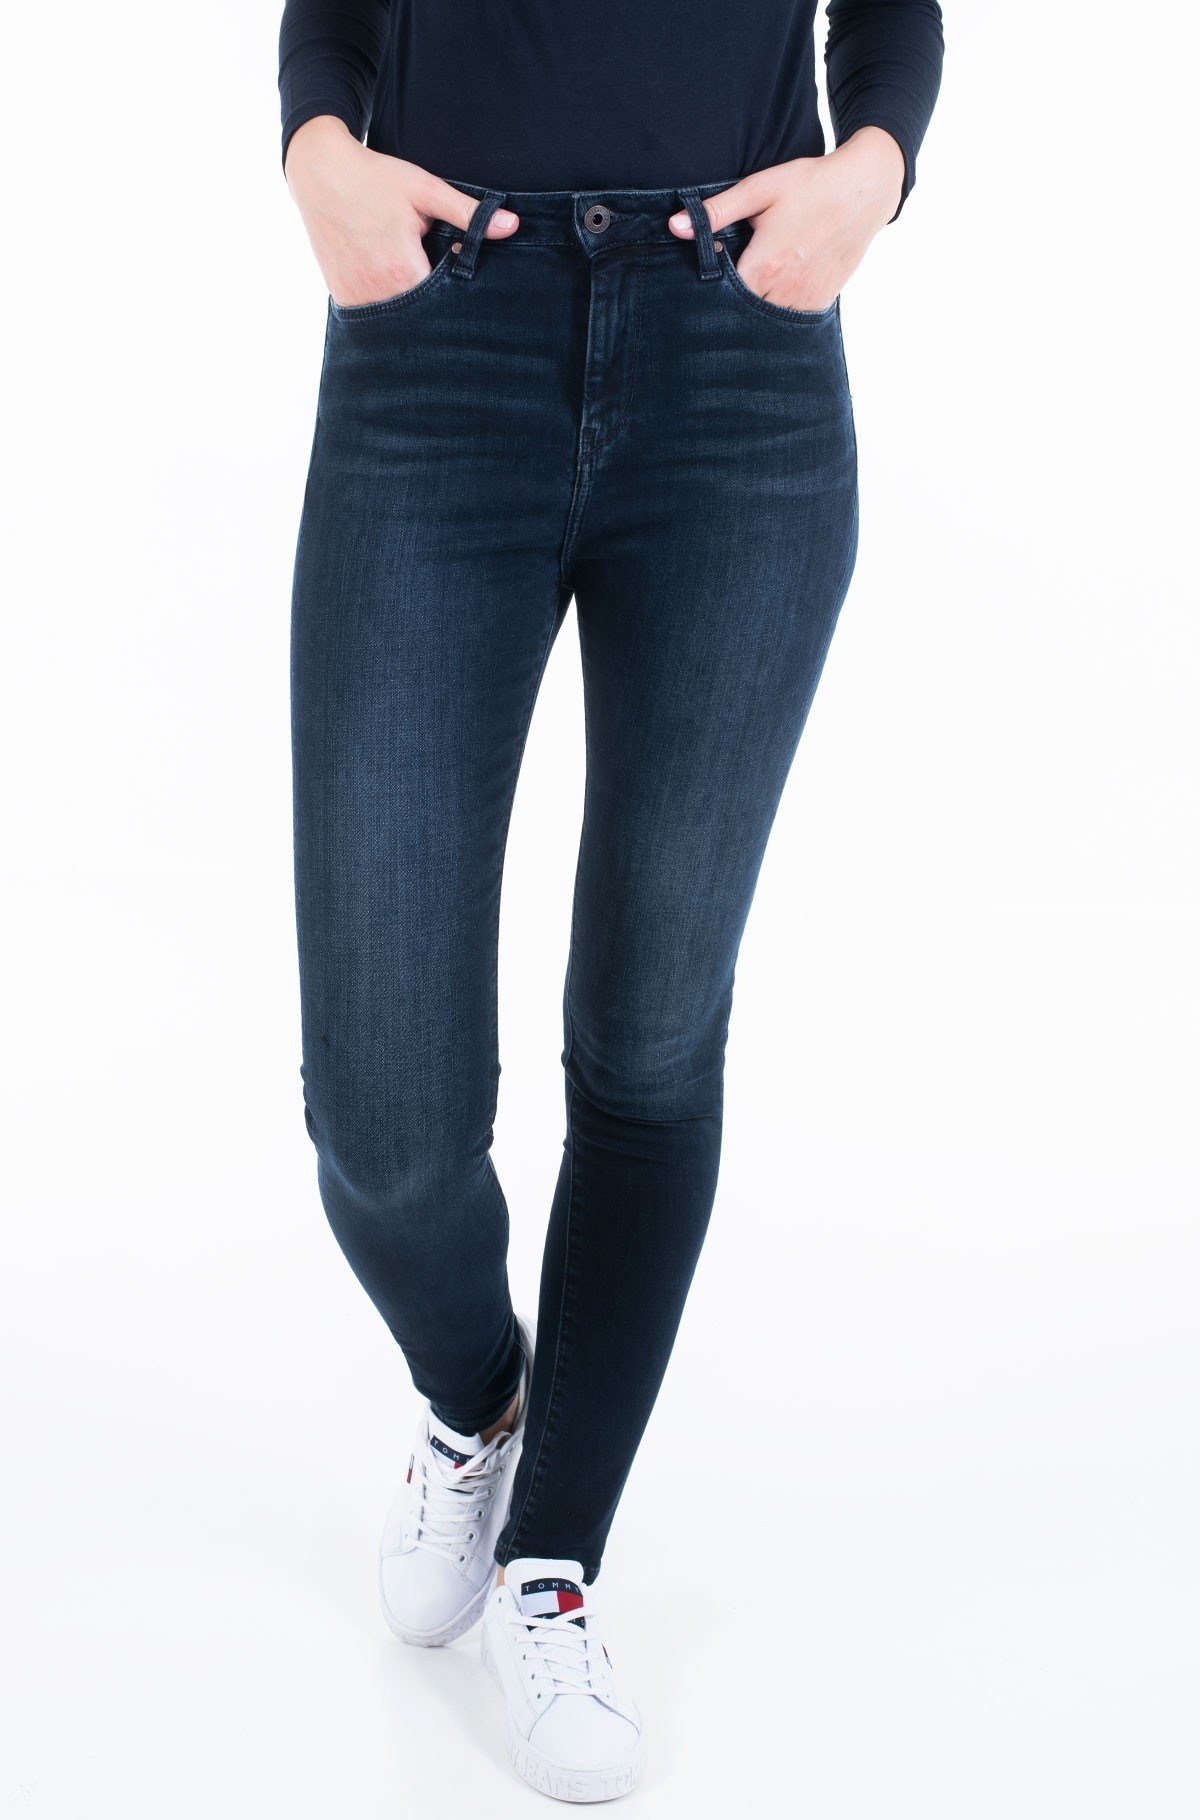 Jeans DION/PL202285DC6-full-1